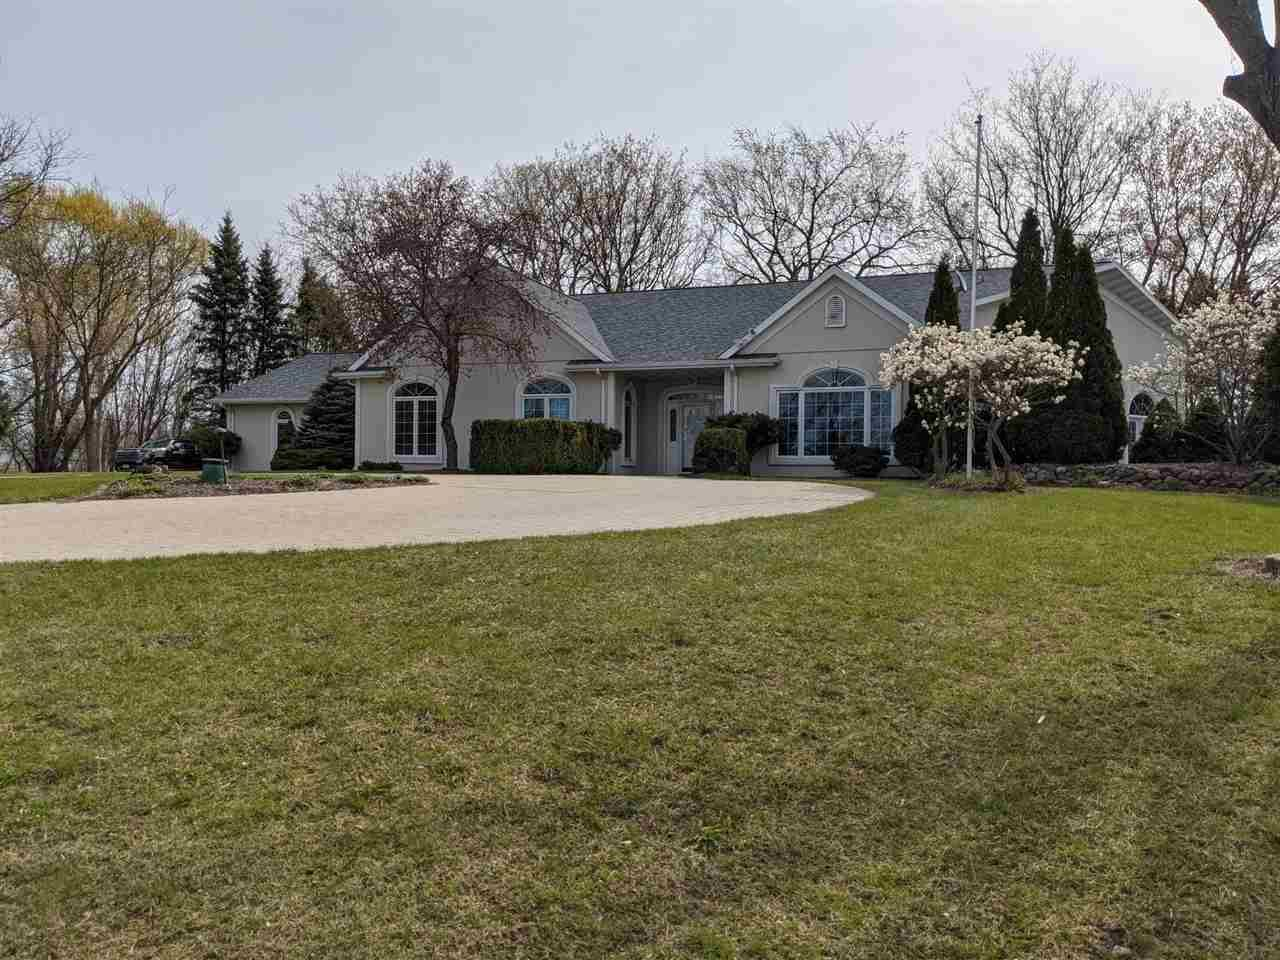 3333 GLENMORE Road, Green Bay, WI 54311 - MLS#: 50239789